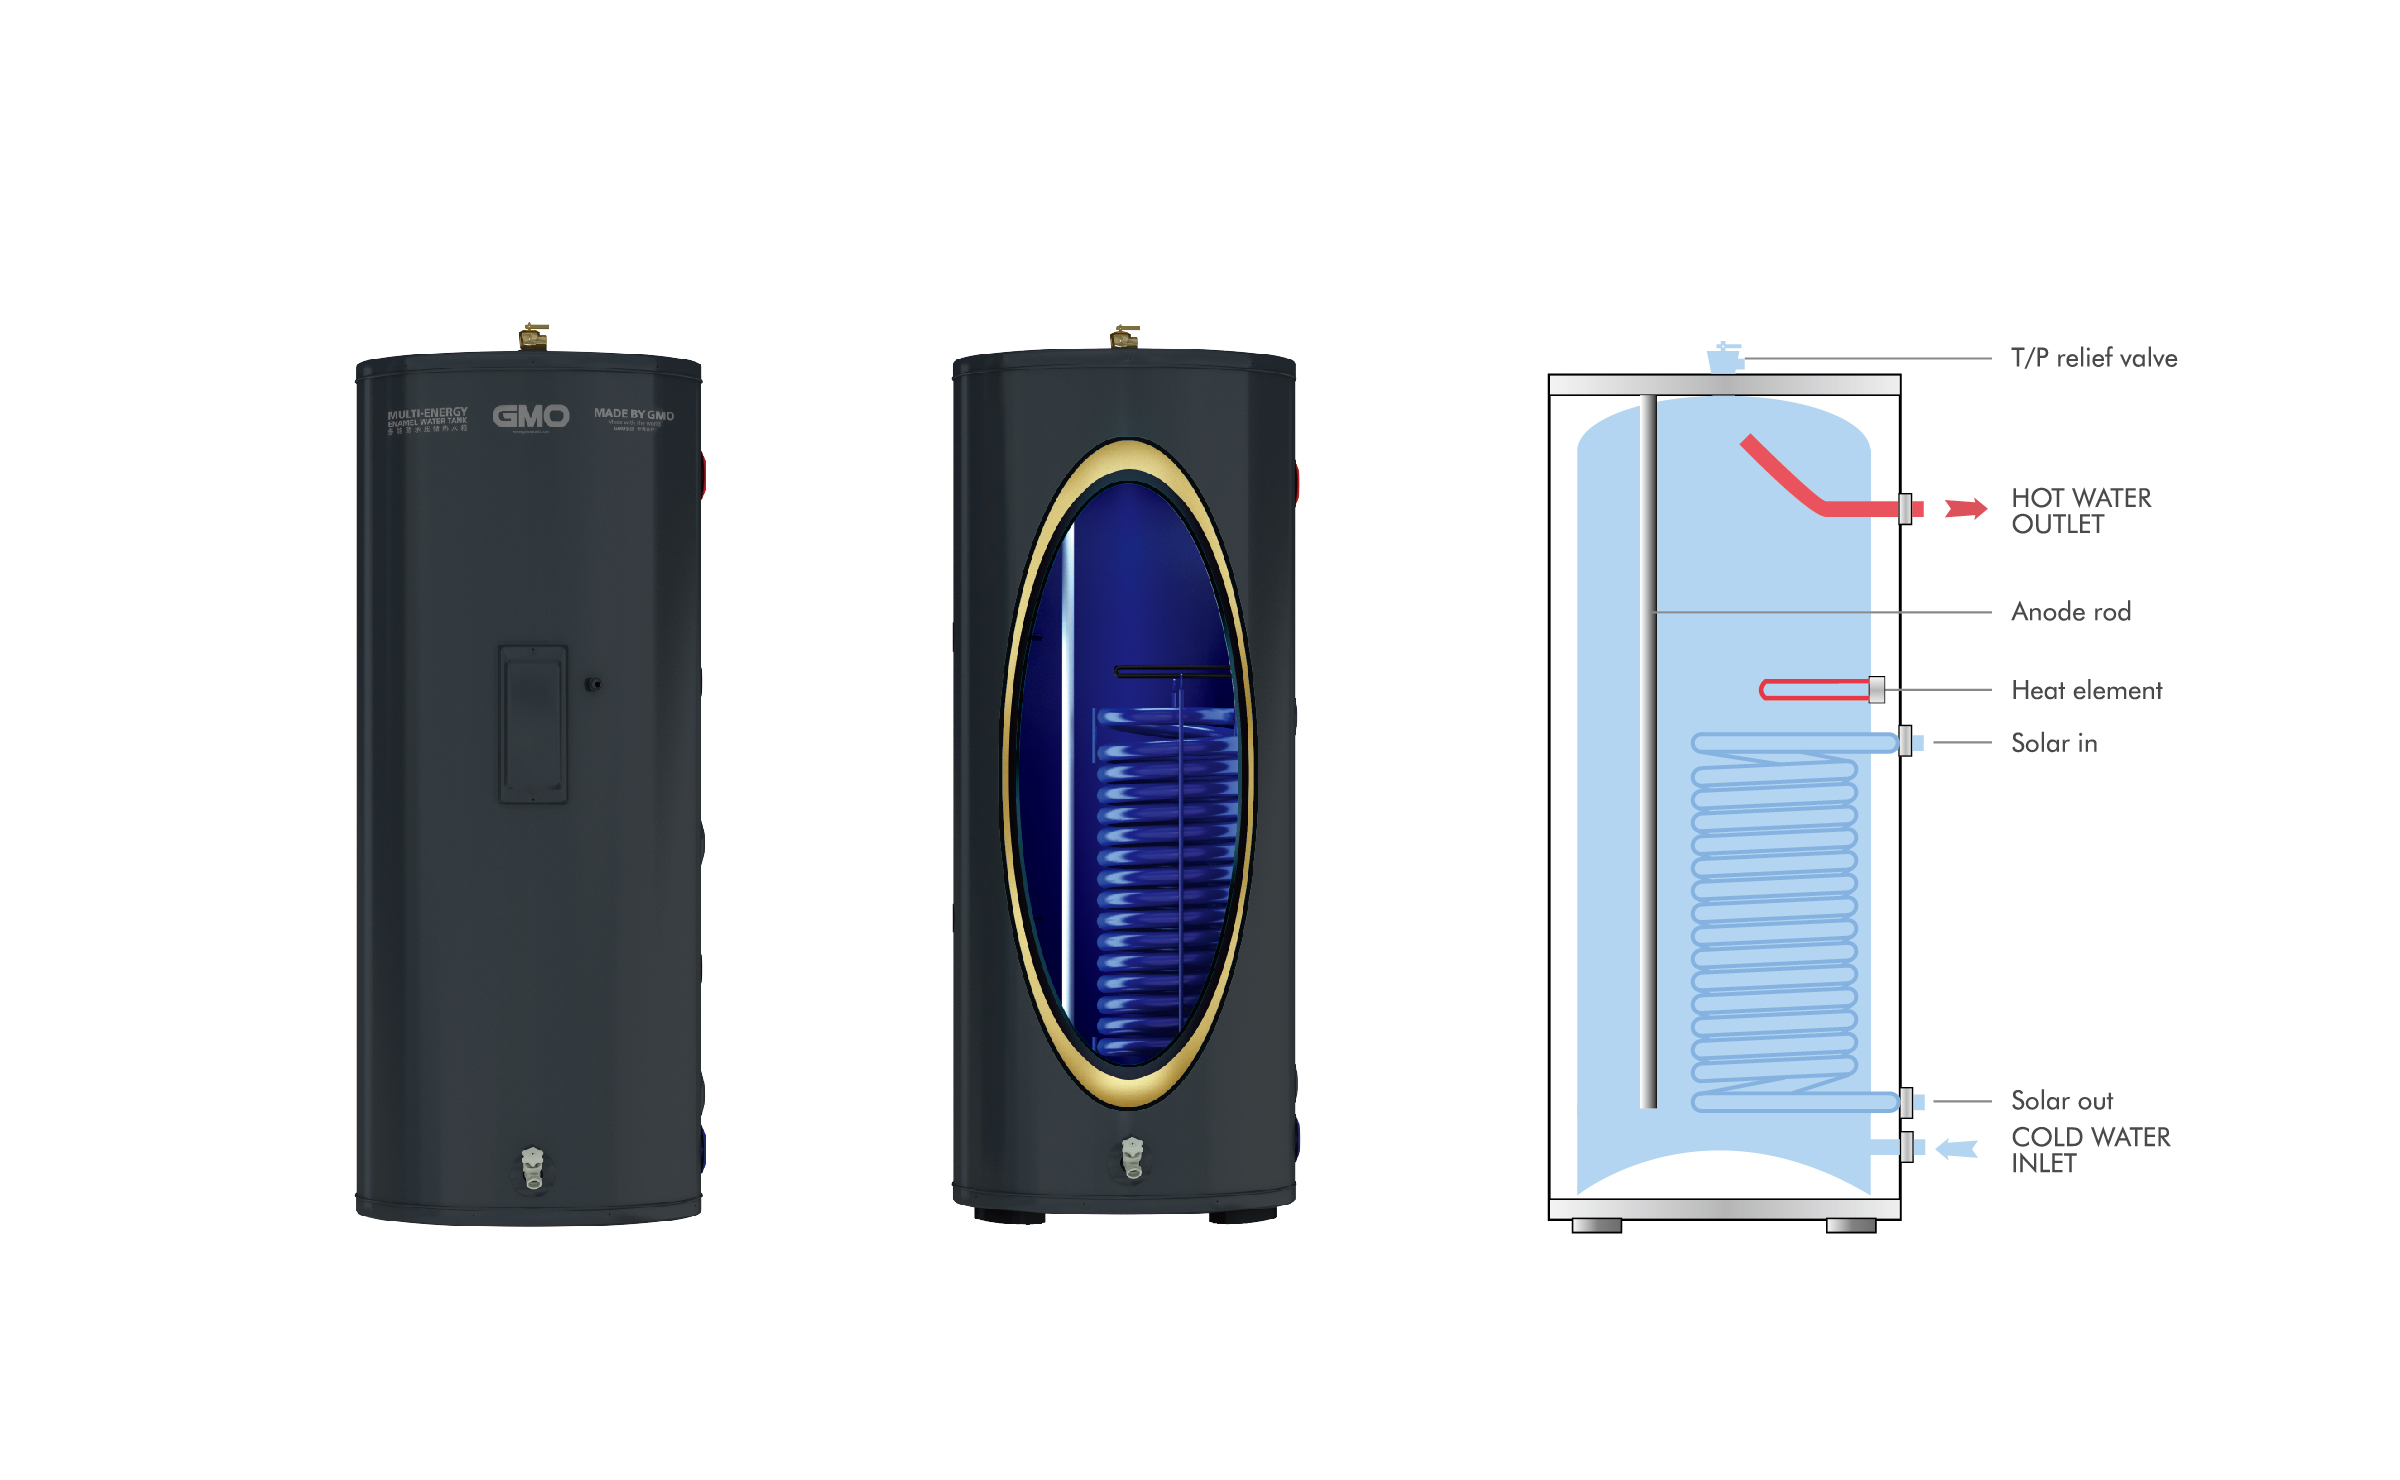 GMO Water Heater | Indirect water heater manufactured by GMO